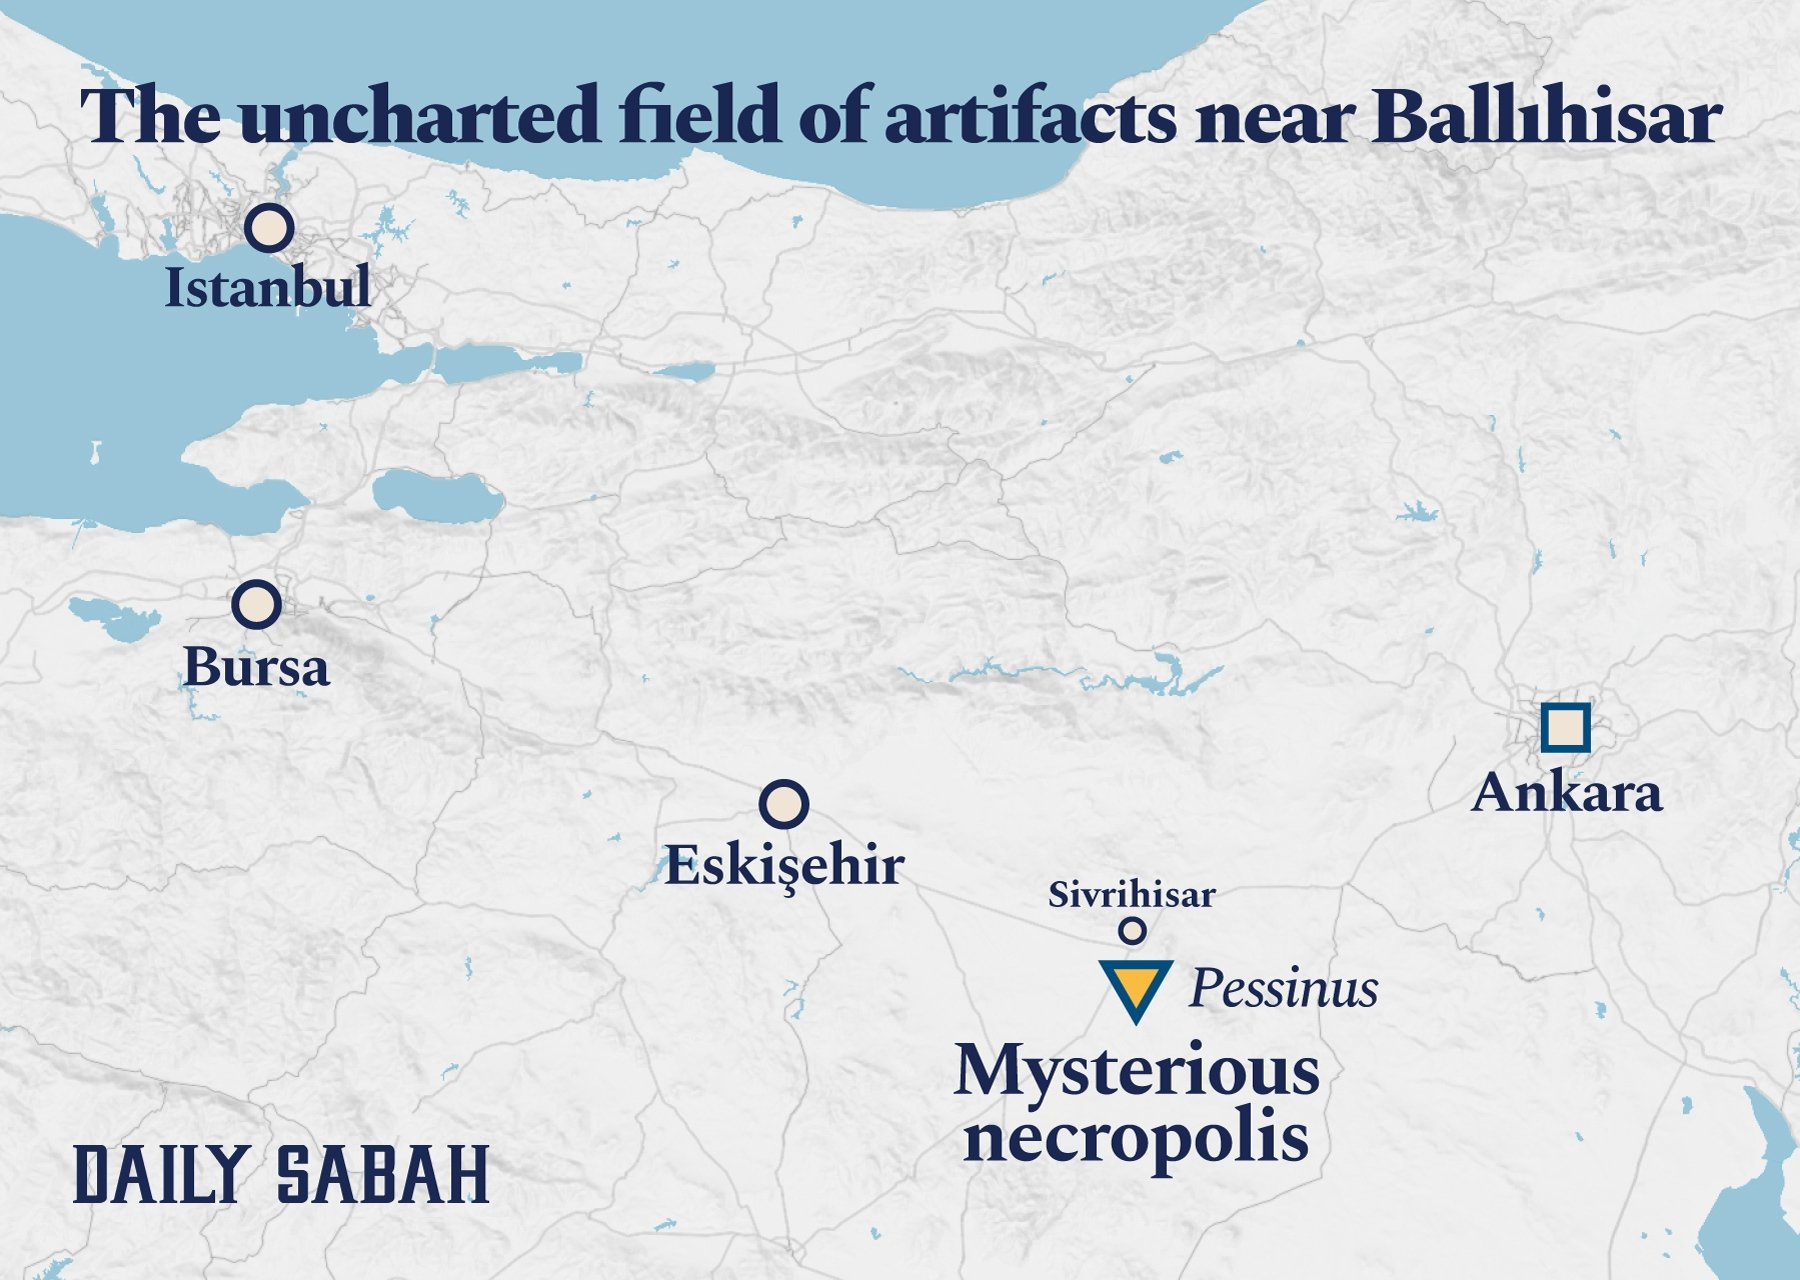 The mysterious necropolis' coordinates are 39.338851, 31.584014. (Infographic by Daily Sabah)